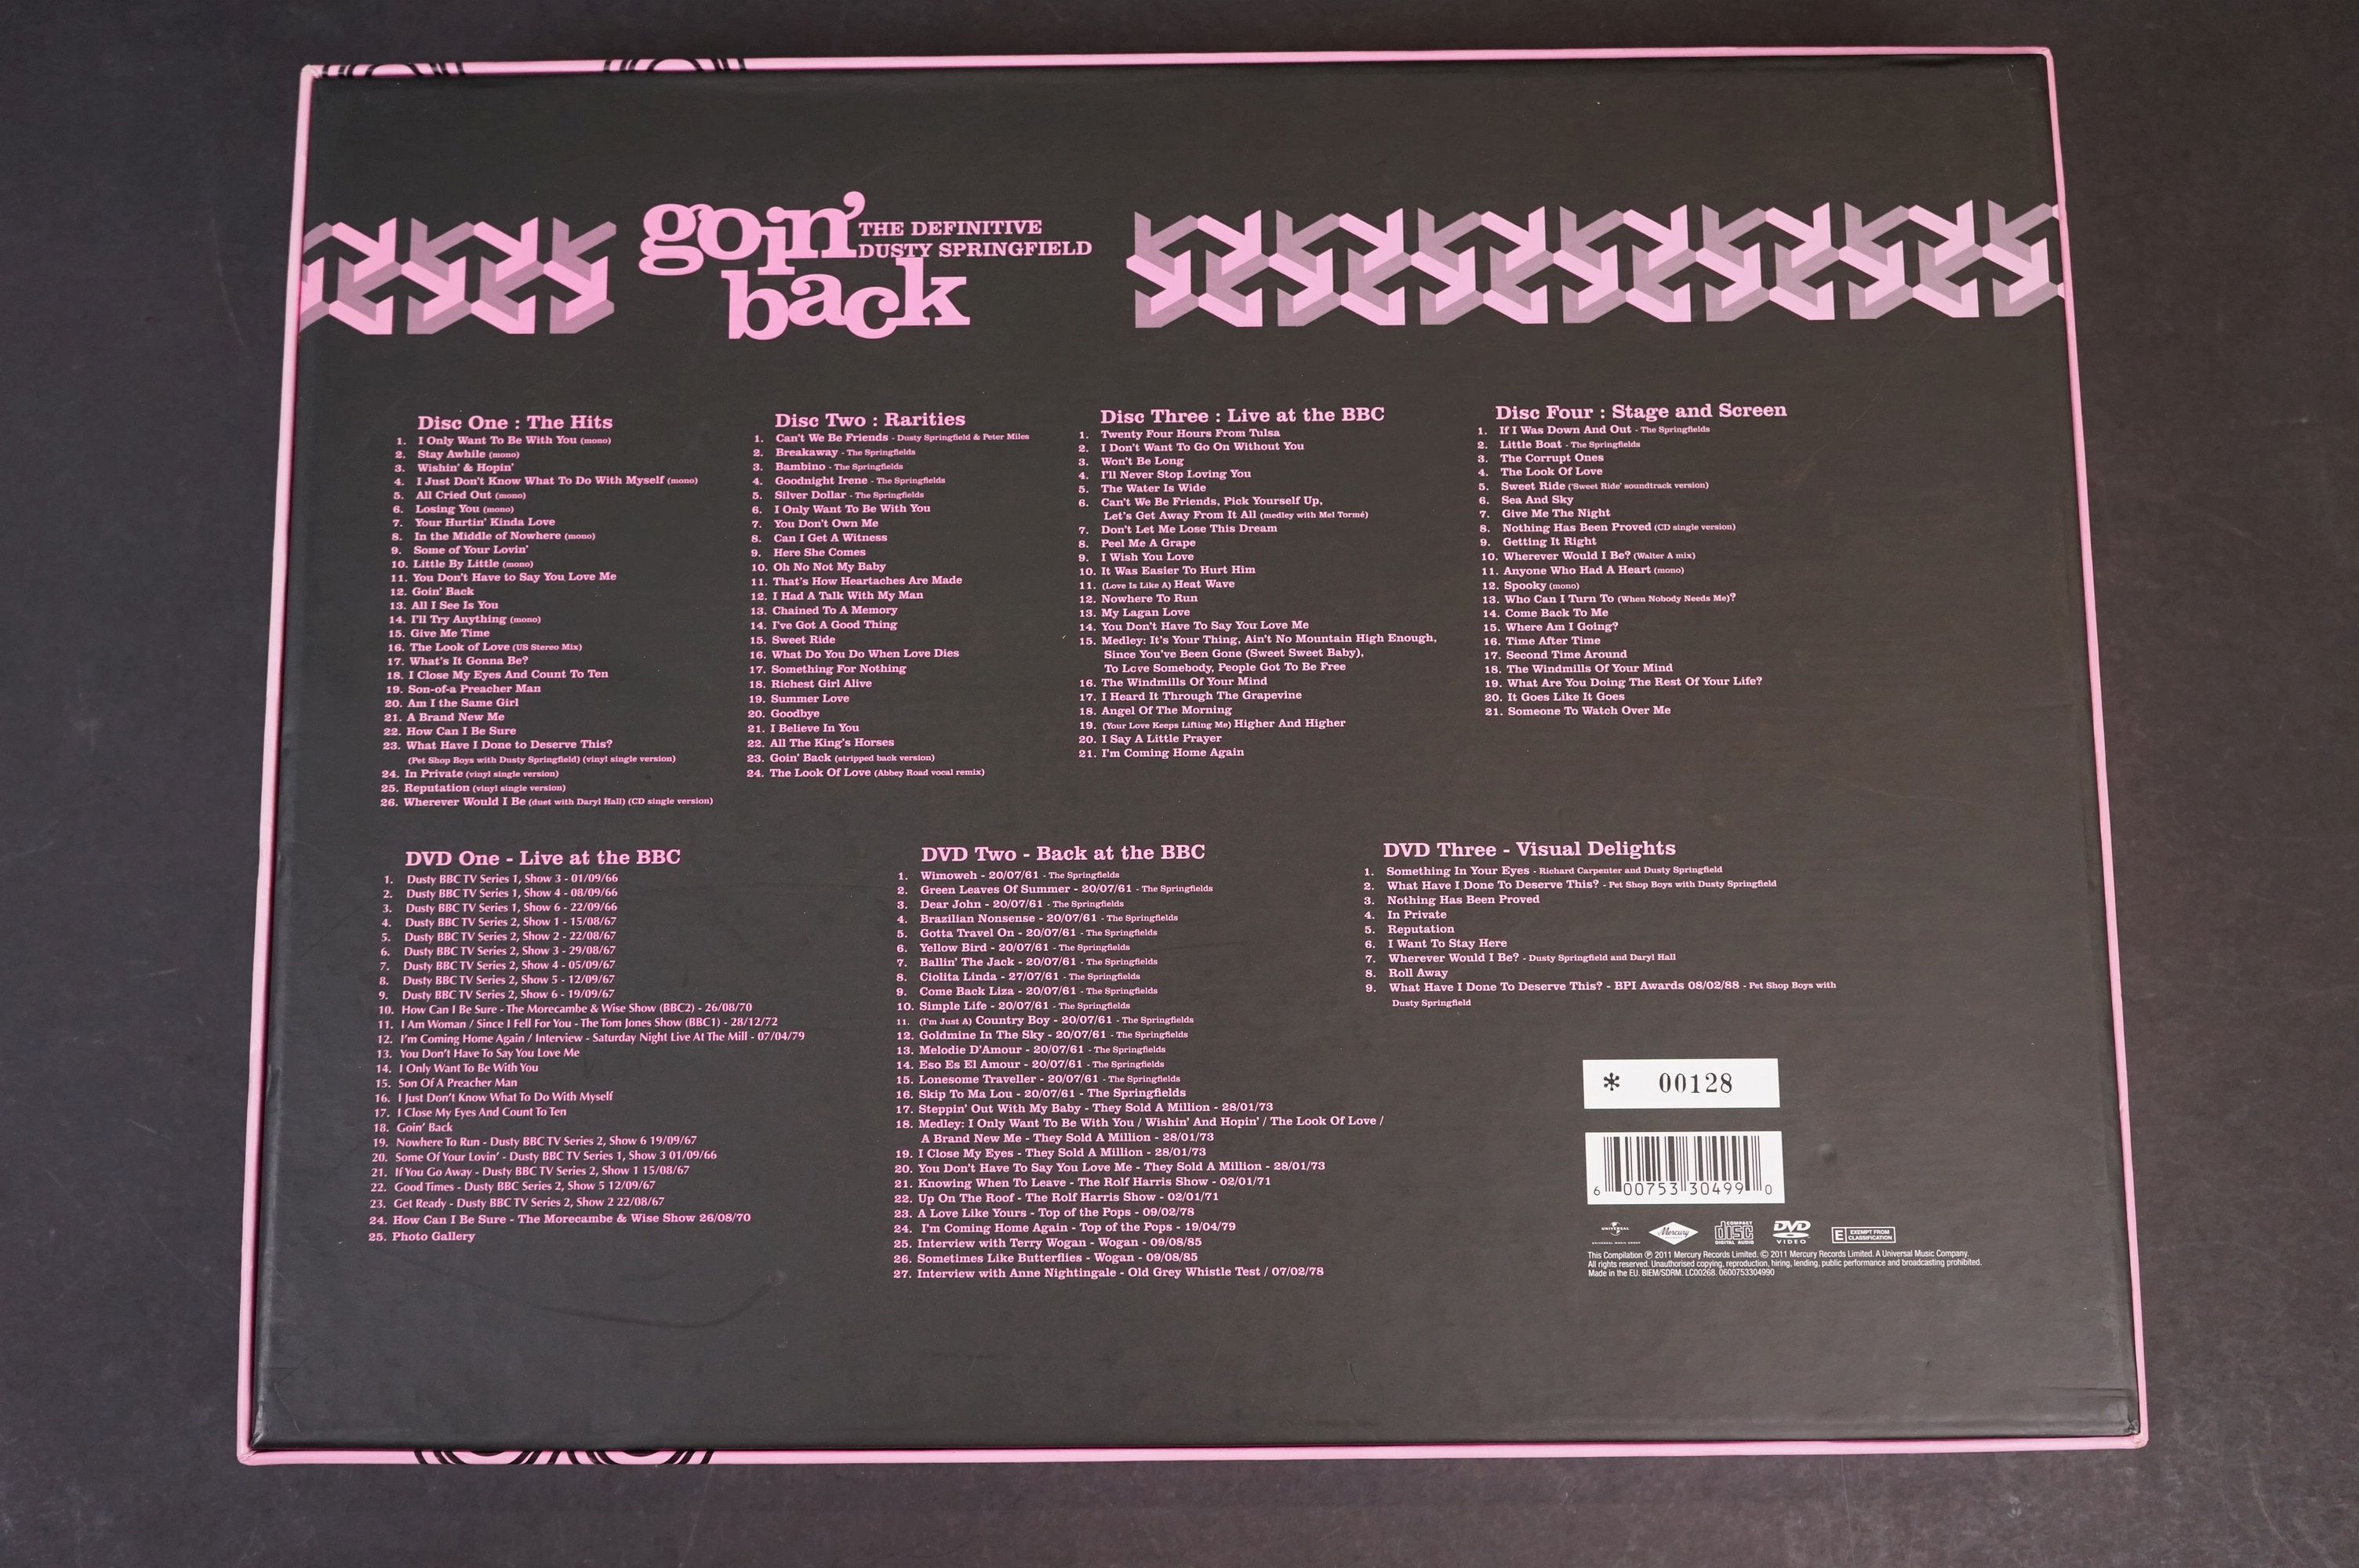 CD / DVD - Dusty Springfield Goin' Back The Definitive Box Set, ltd edn number 00128, ex with some - Image 7 of 8